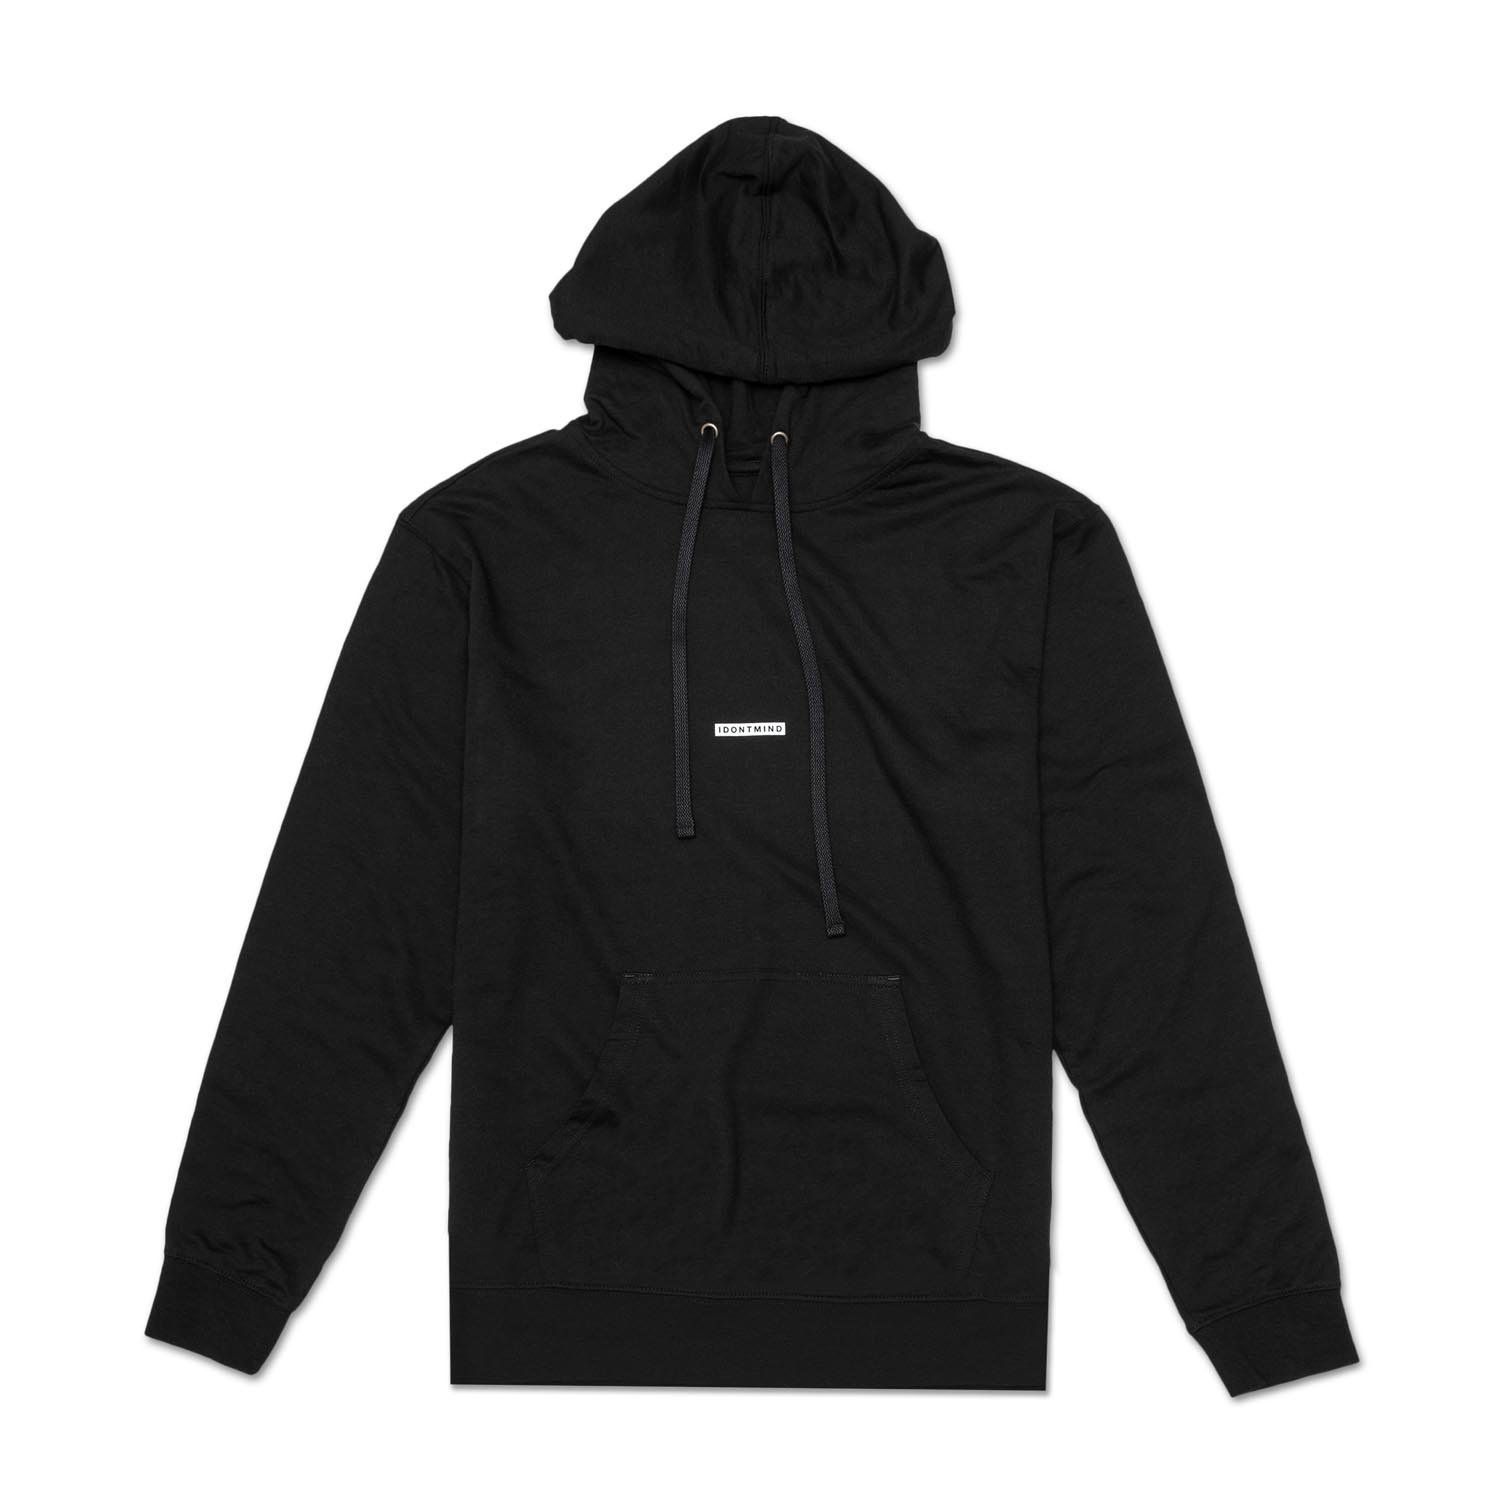 Center-Hoodie-Black.jpg